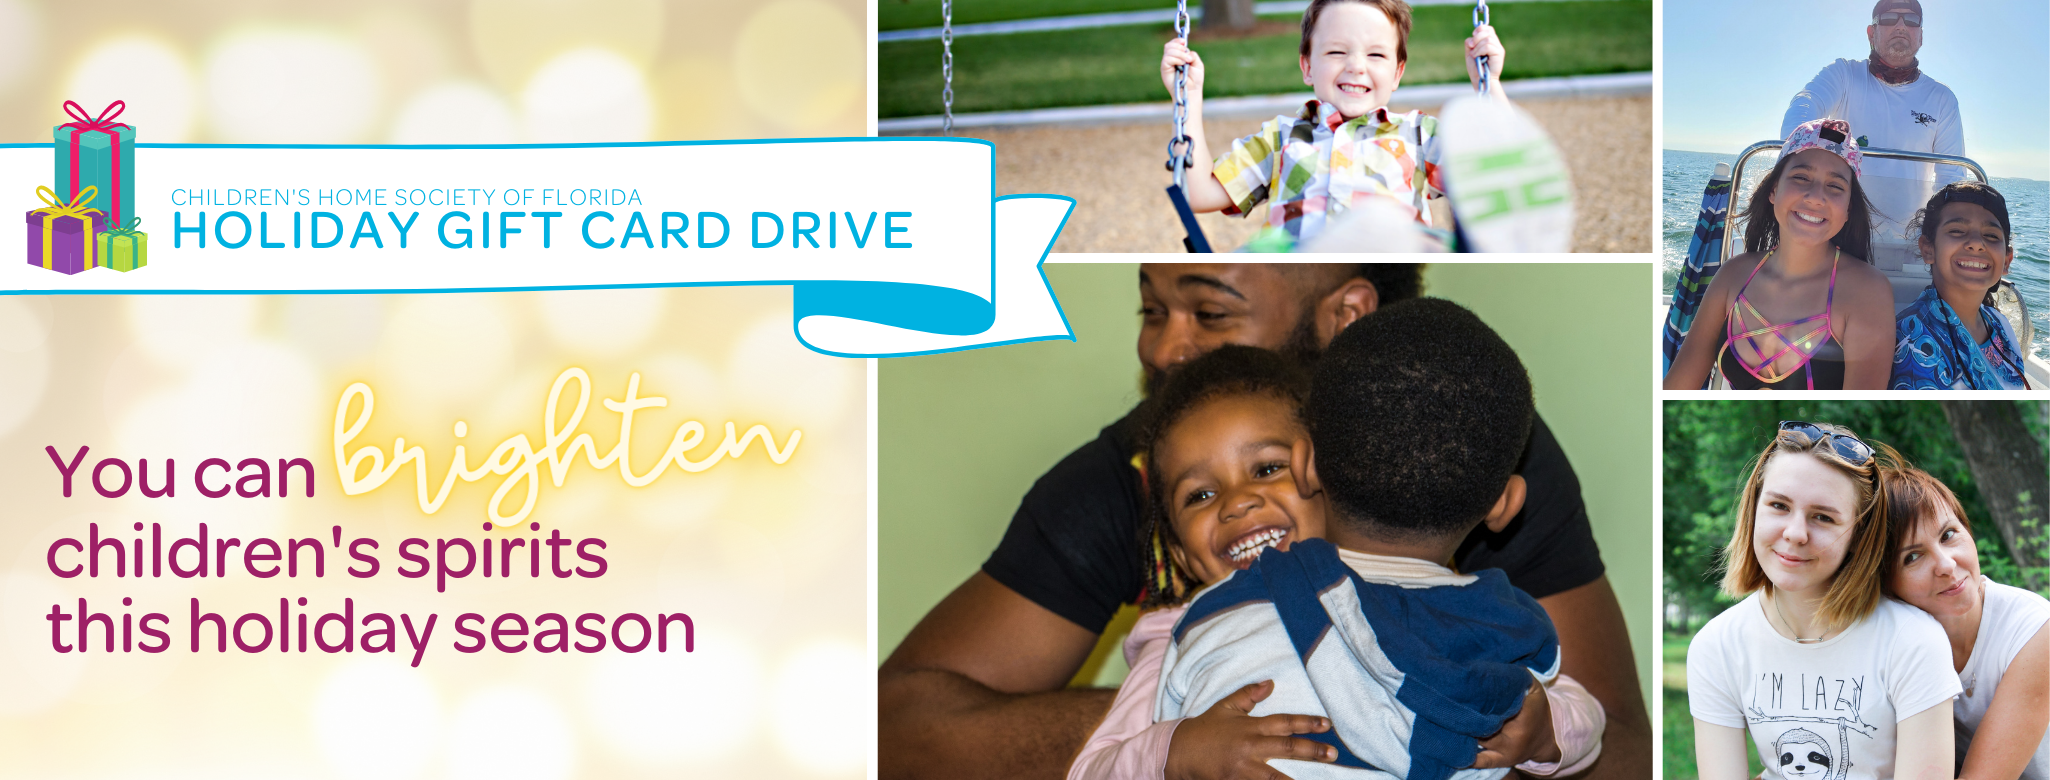 CHS Holiday Gift Card Drive - Banner